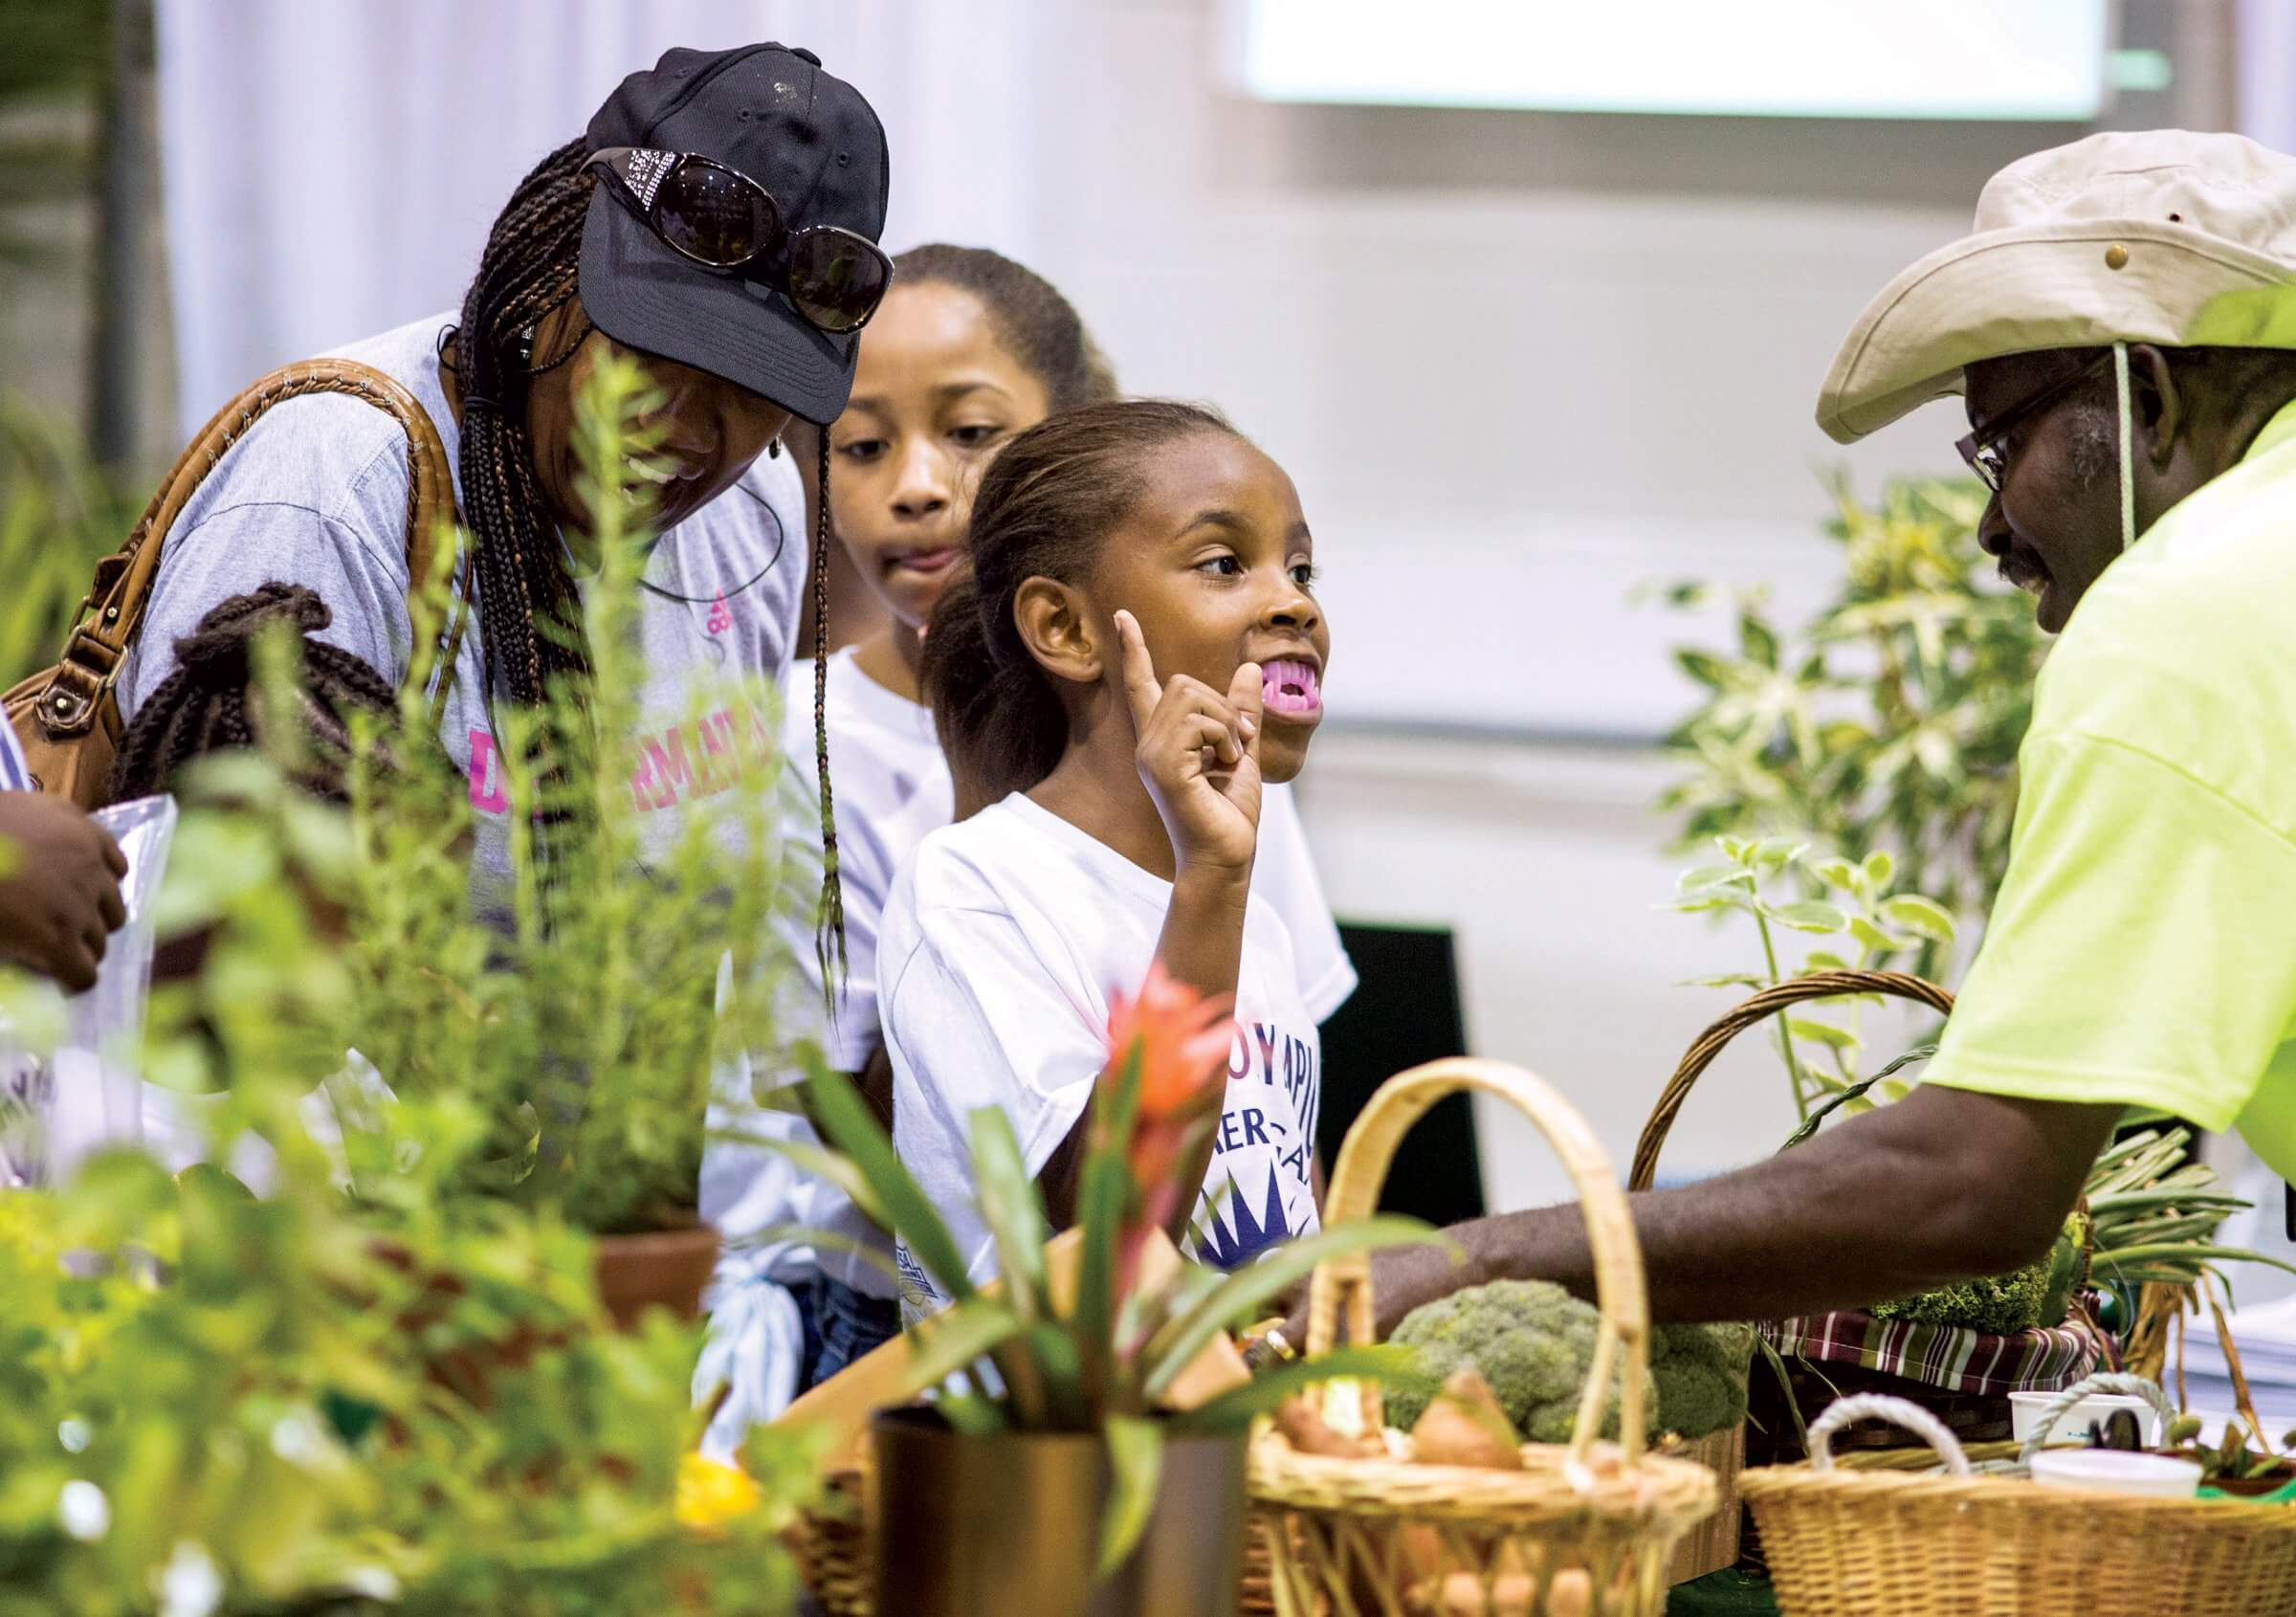 At the exhibit for Harris County Precinct One Horticulture Department, students have the opportunity to learn about growing herbs, vegetables and plants.